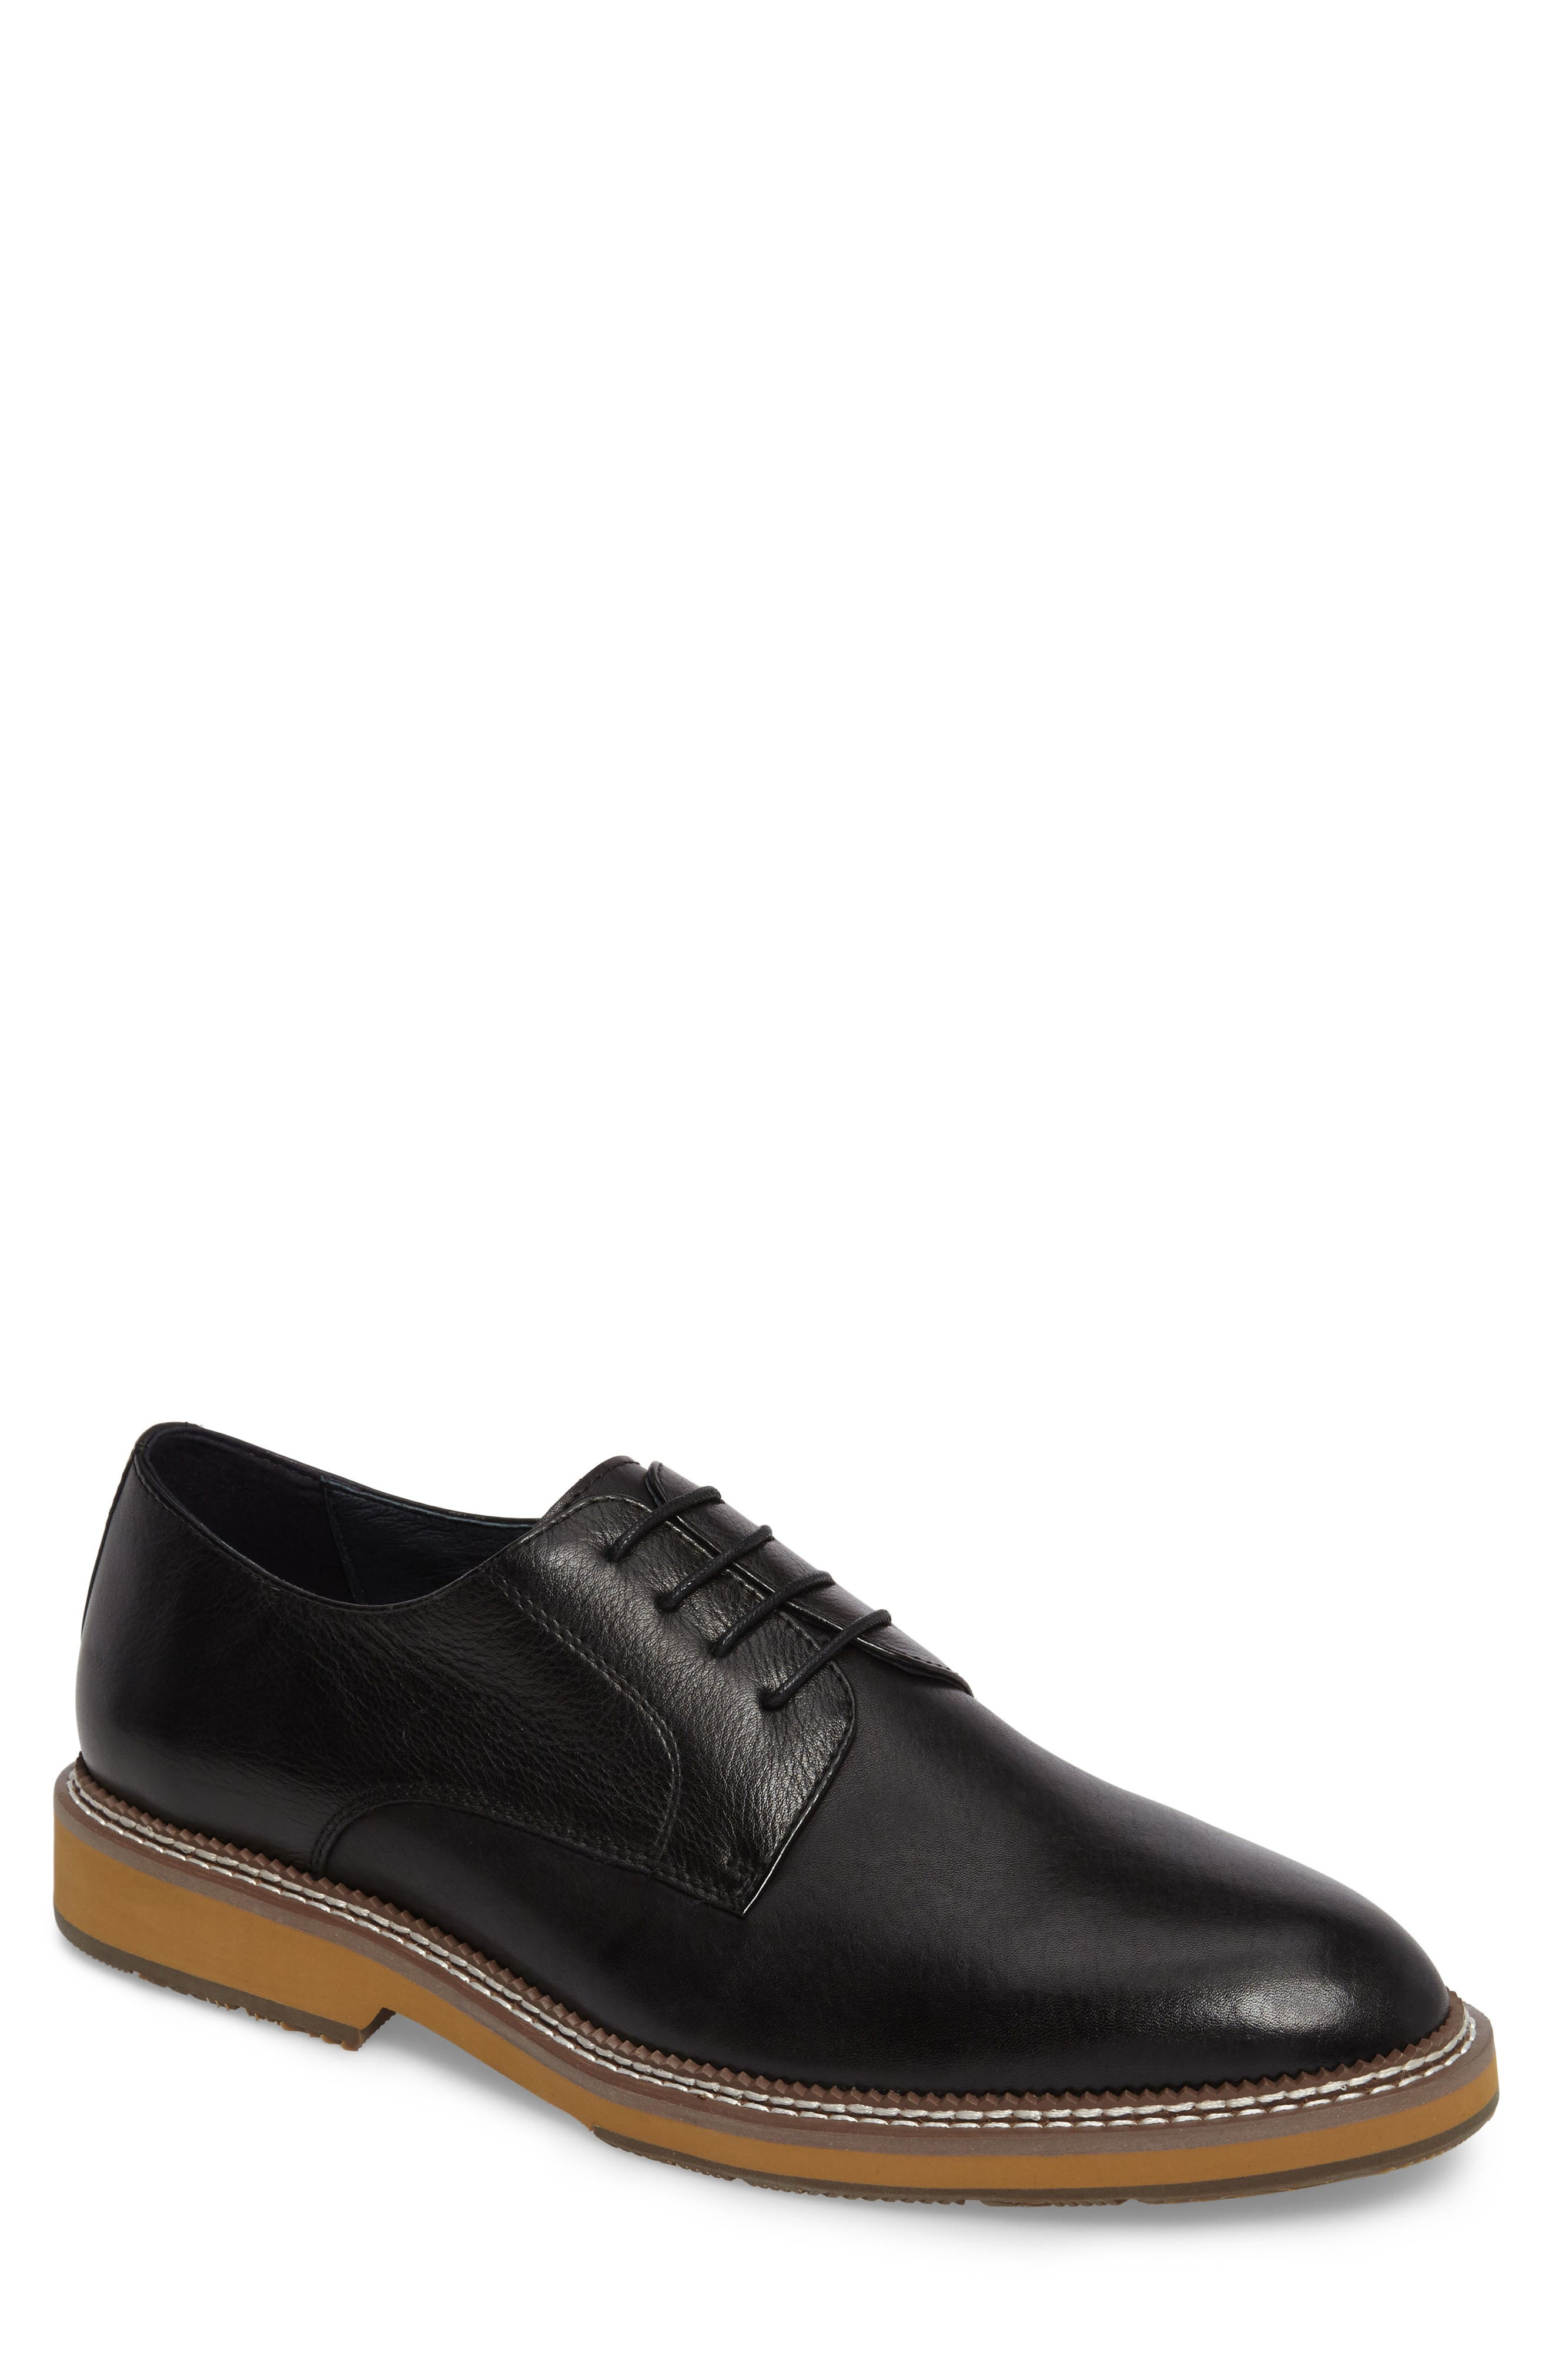 Alternate Image 1 Selected - Zanzara Fenton Plain Toe Derby (Men)